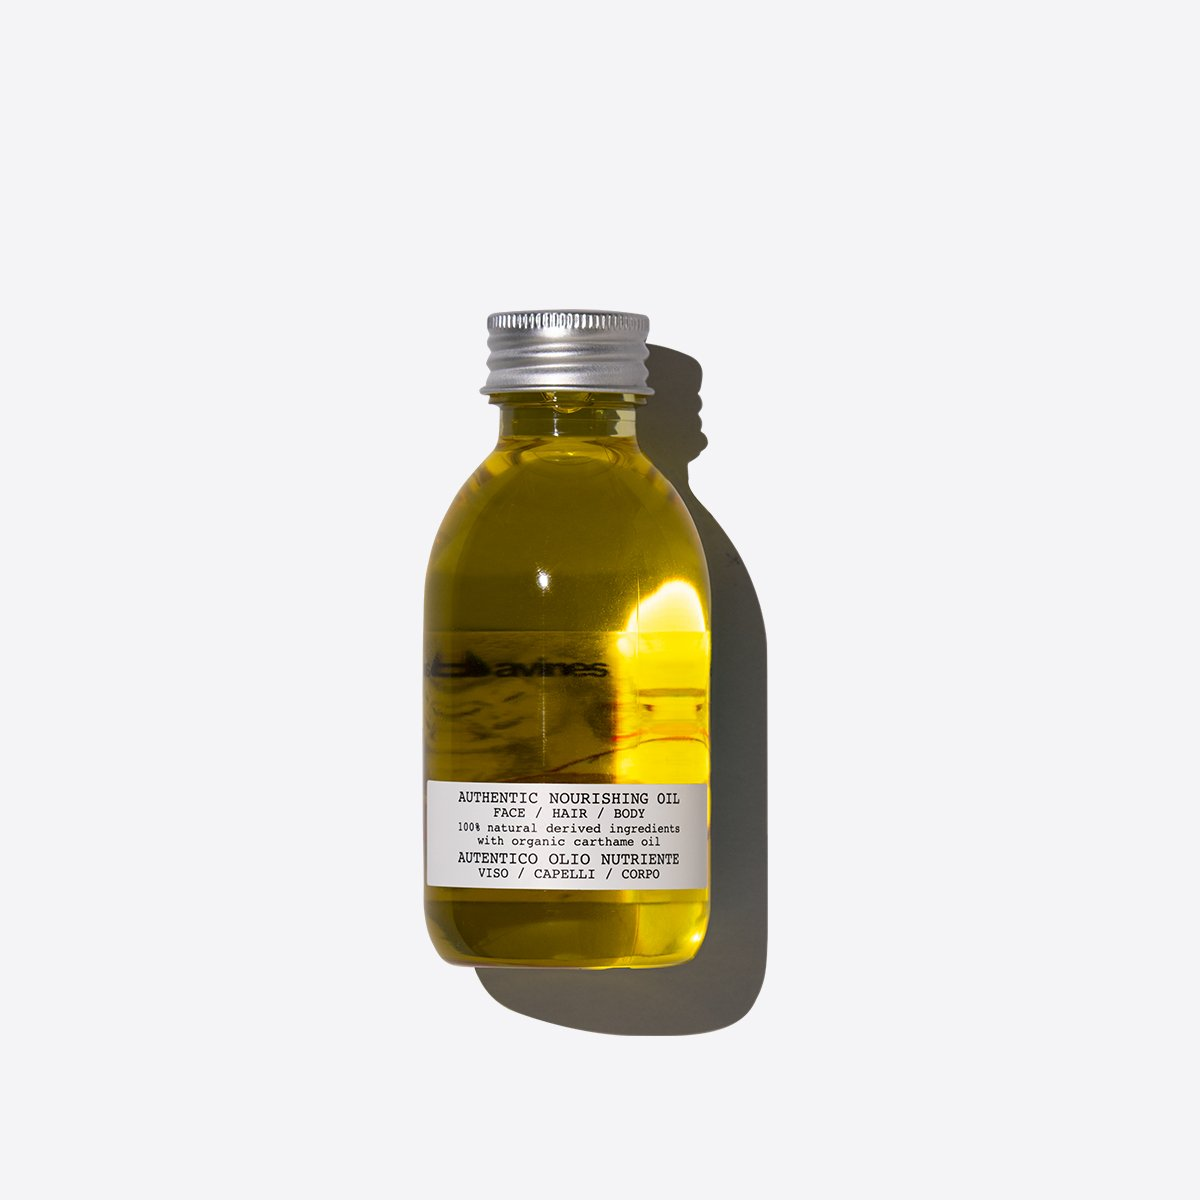 74012_DAVINES_AUTHENTIC_FORMULAS_Olio_Nutriente_140ml_Davines_2000x